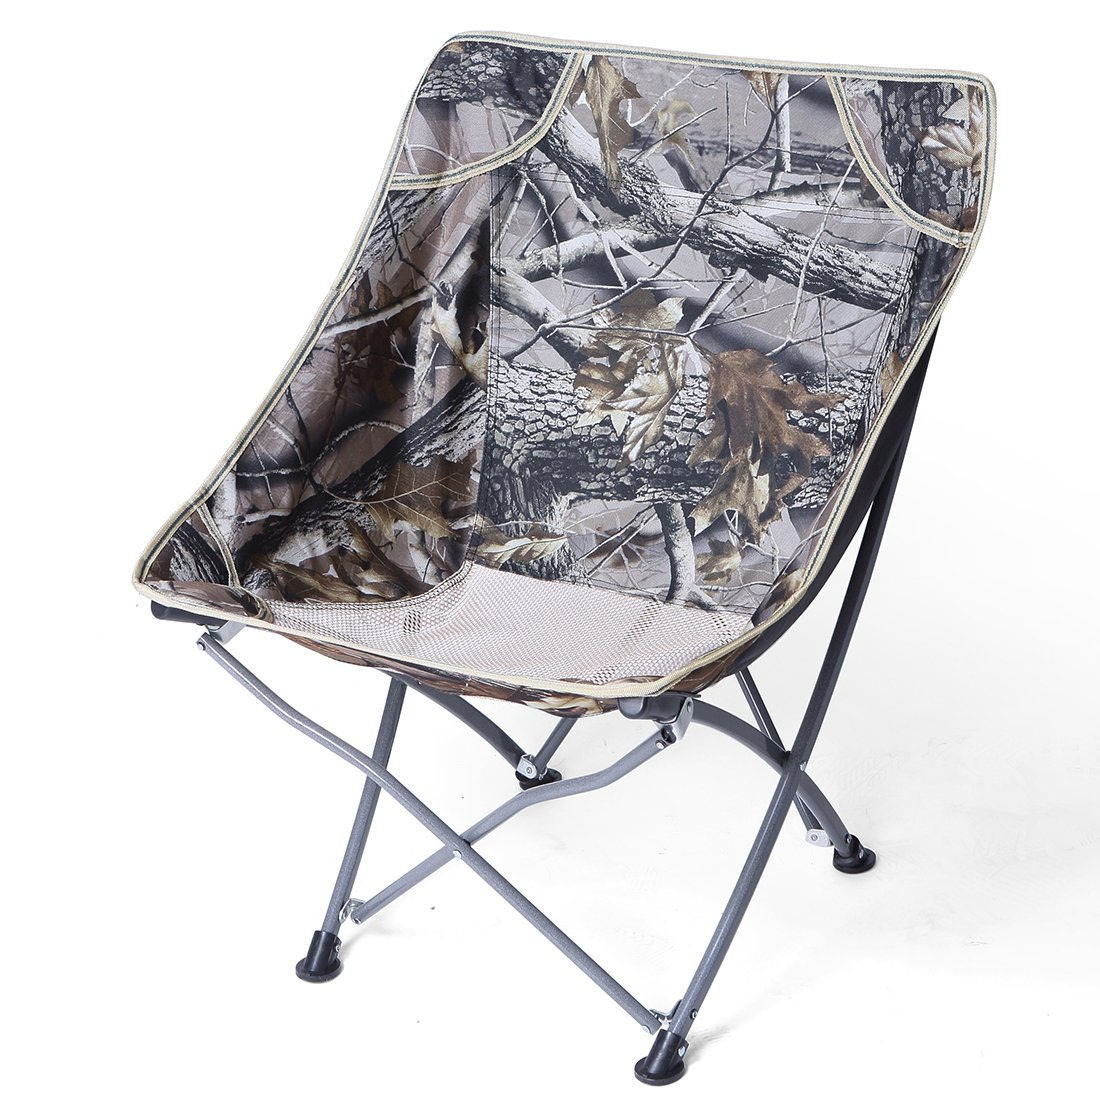 Idyewant Ultralight Protable Backpack Outdoor Camping Chairs, Compact & Beach Chairs Backpack Fishing Outdoor Folding Chairs by Idyewant